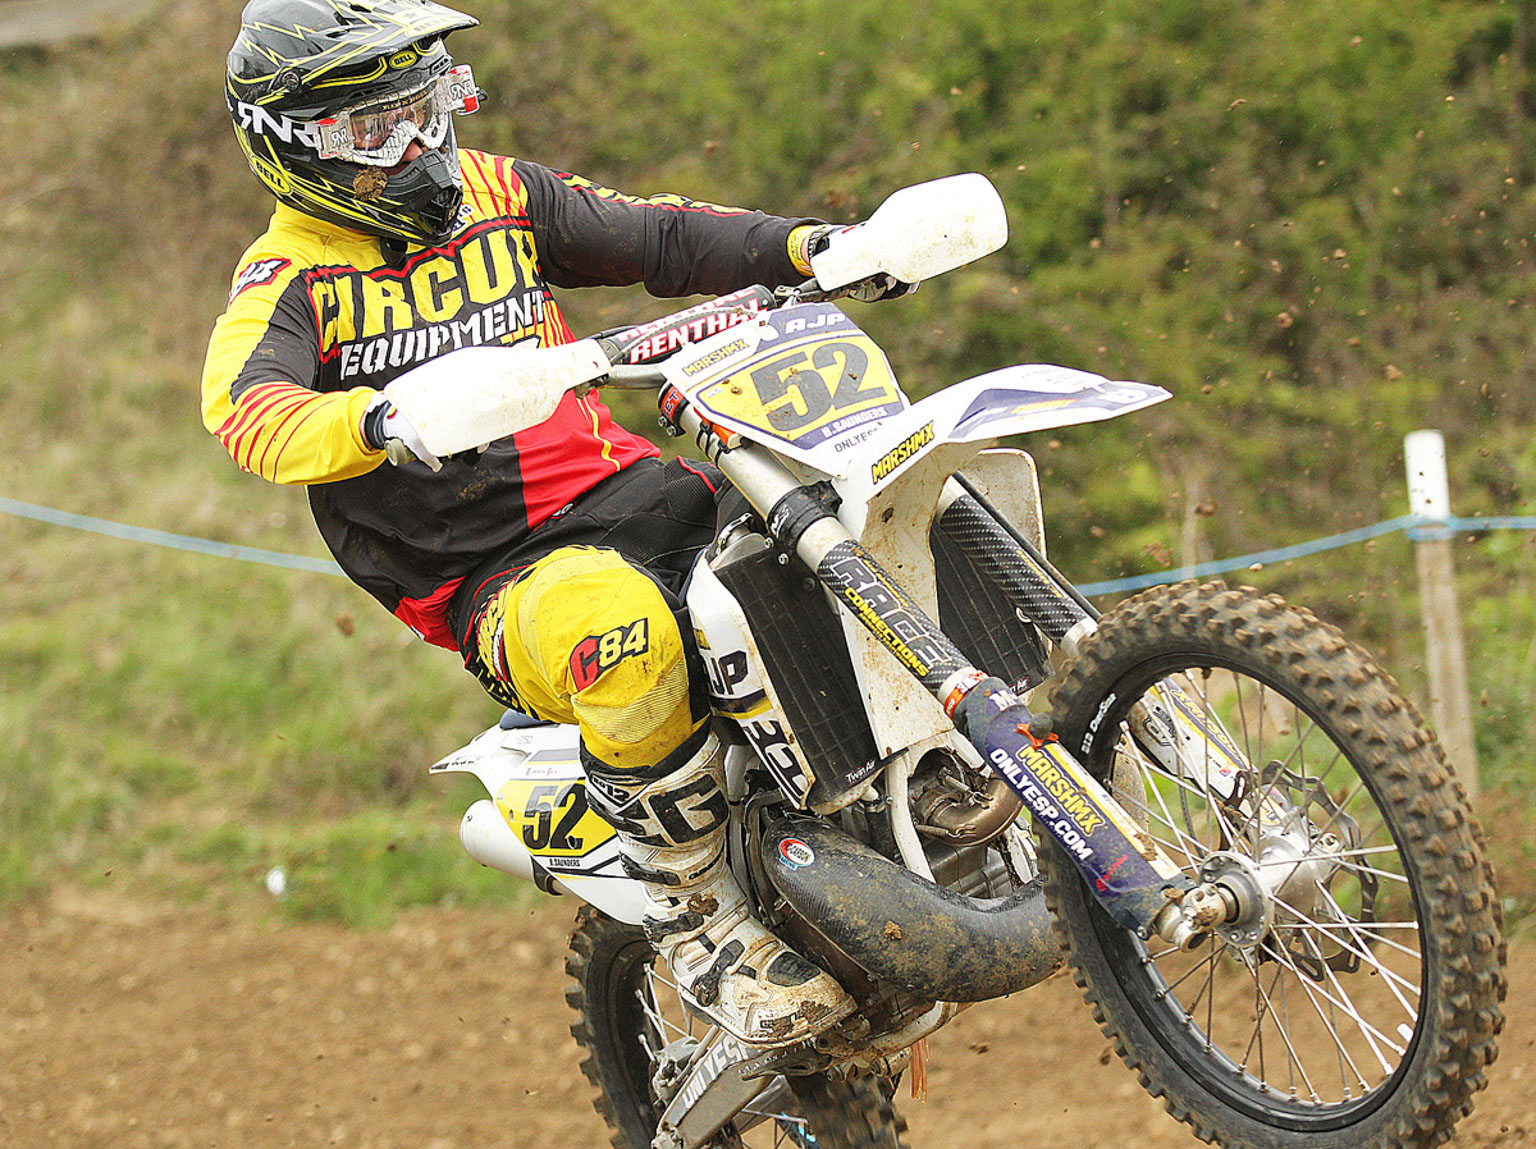 Ben Saunders, 11th in MX1